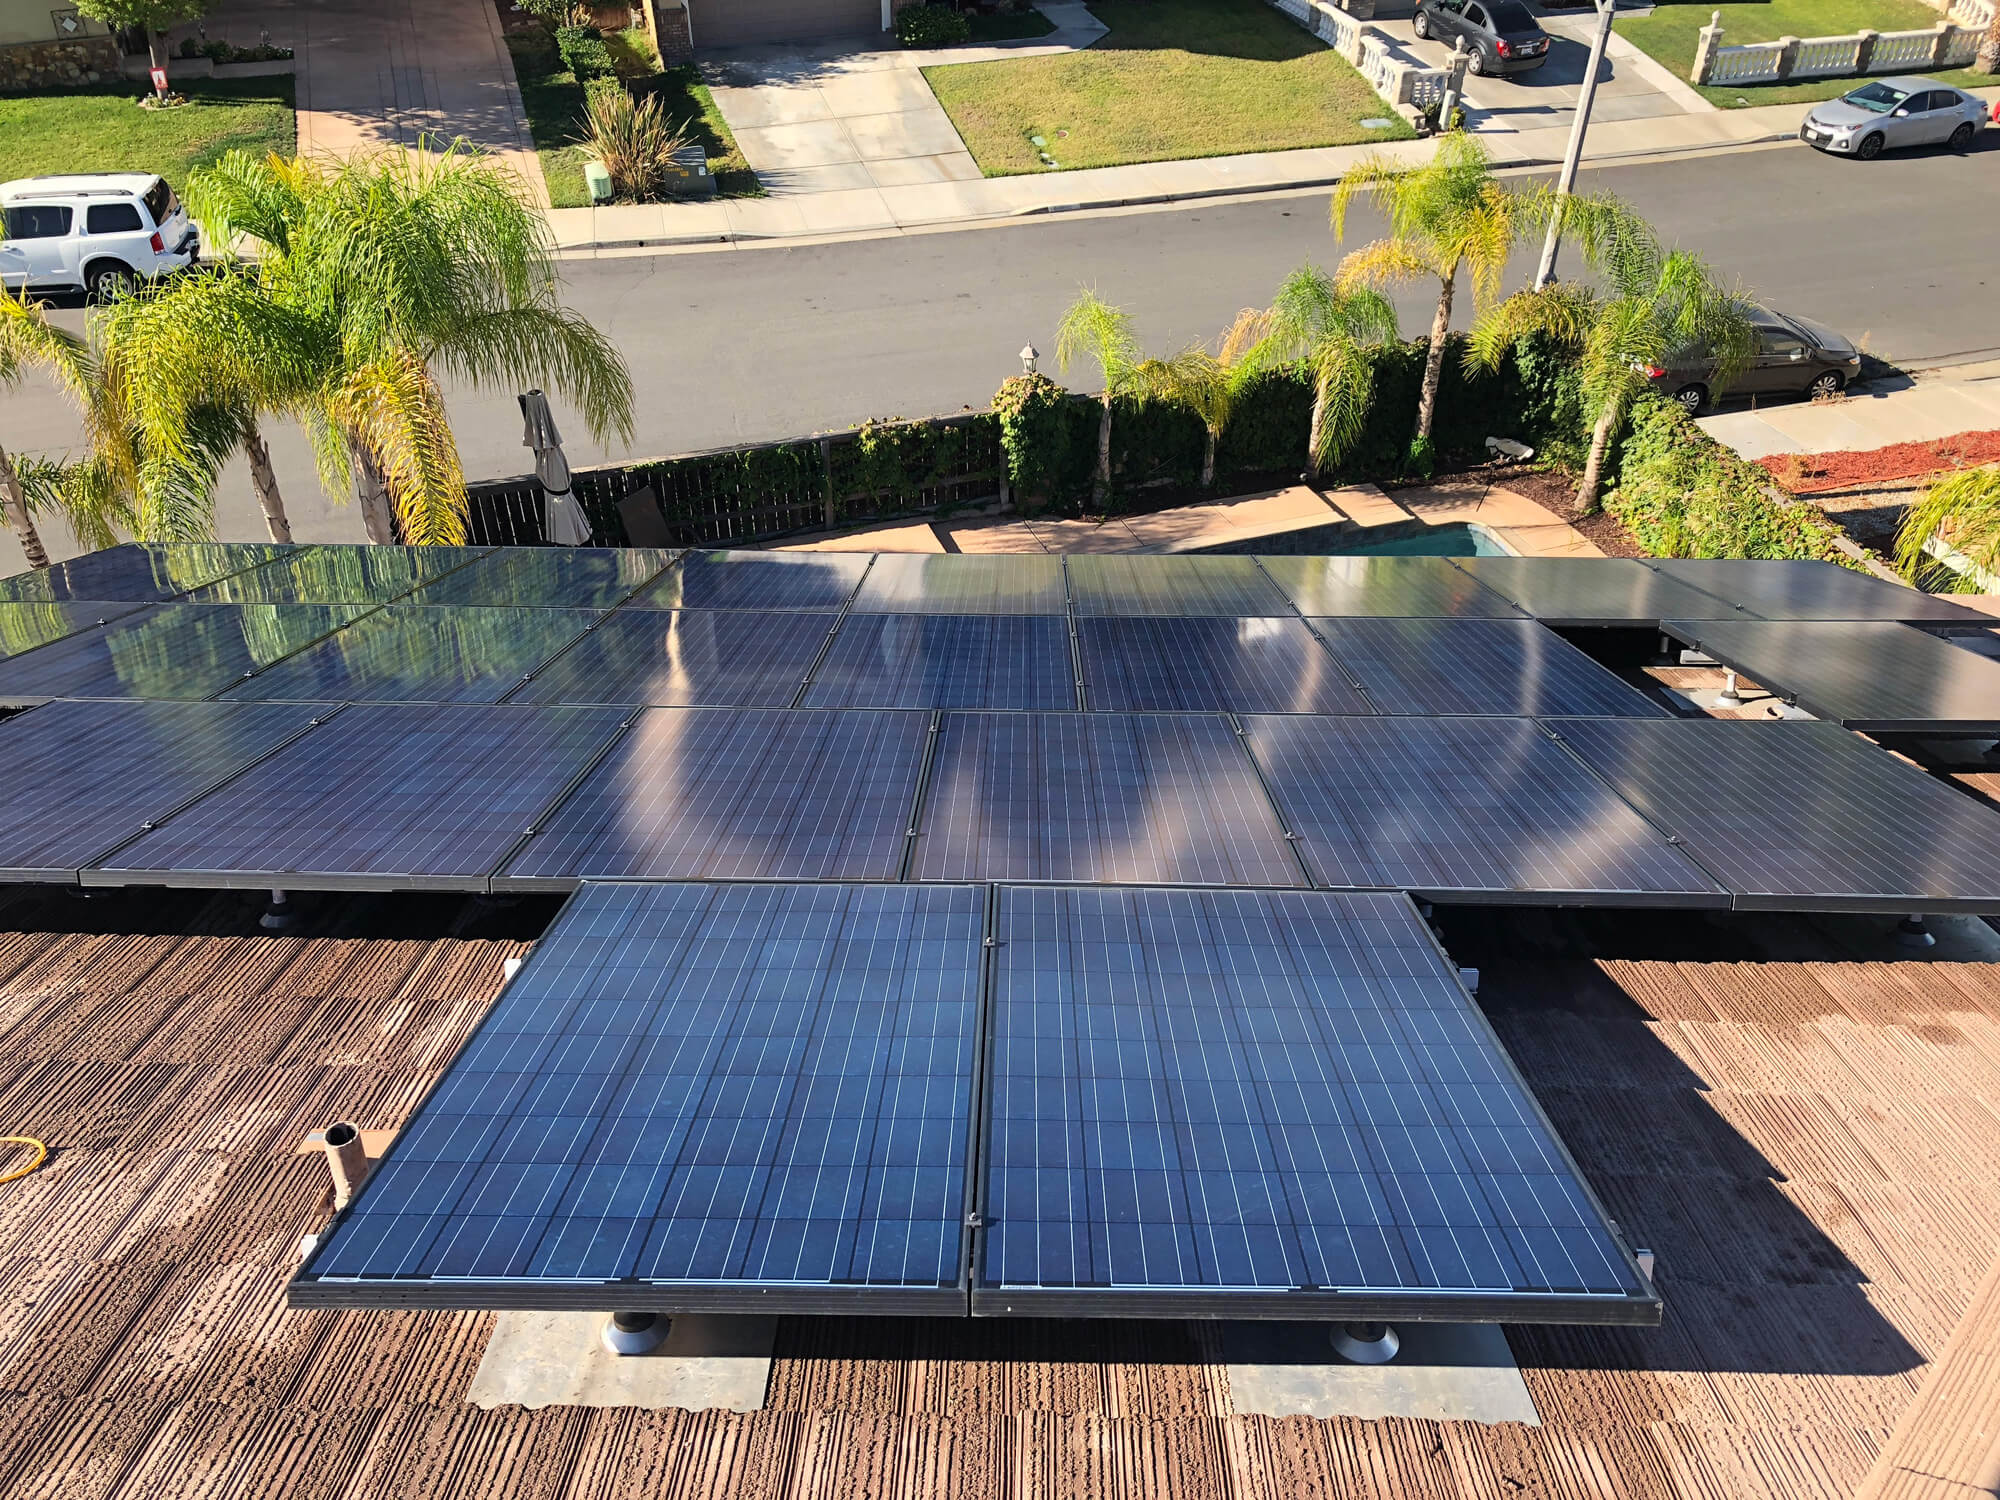 Solar Panel Cleaning Temecula - Murrieta - Clearvu Window Cleaning